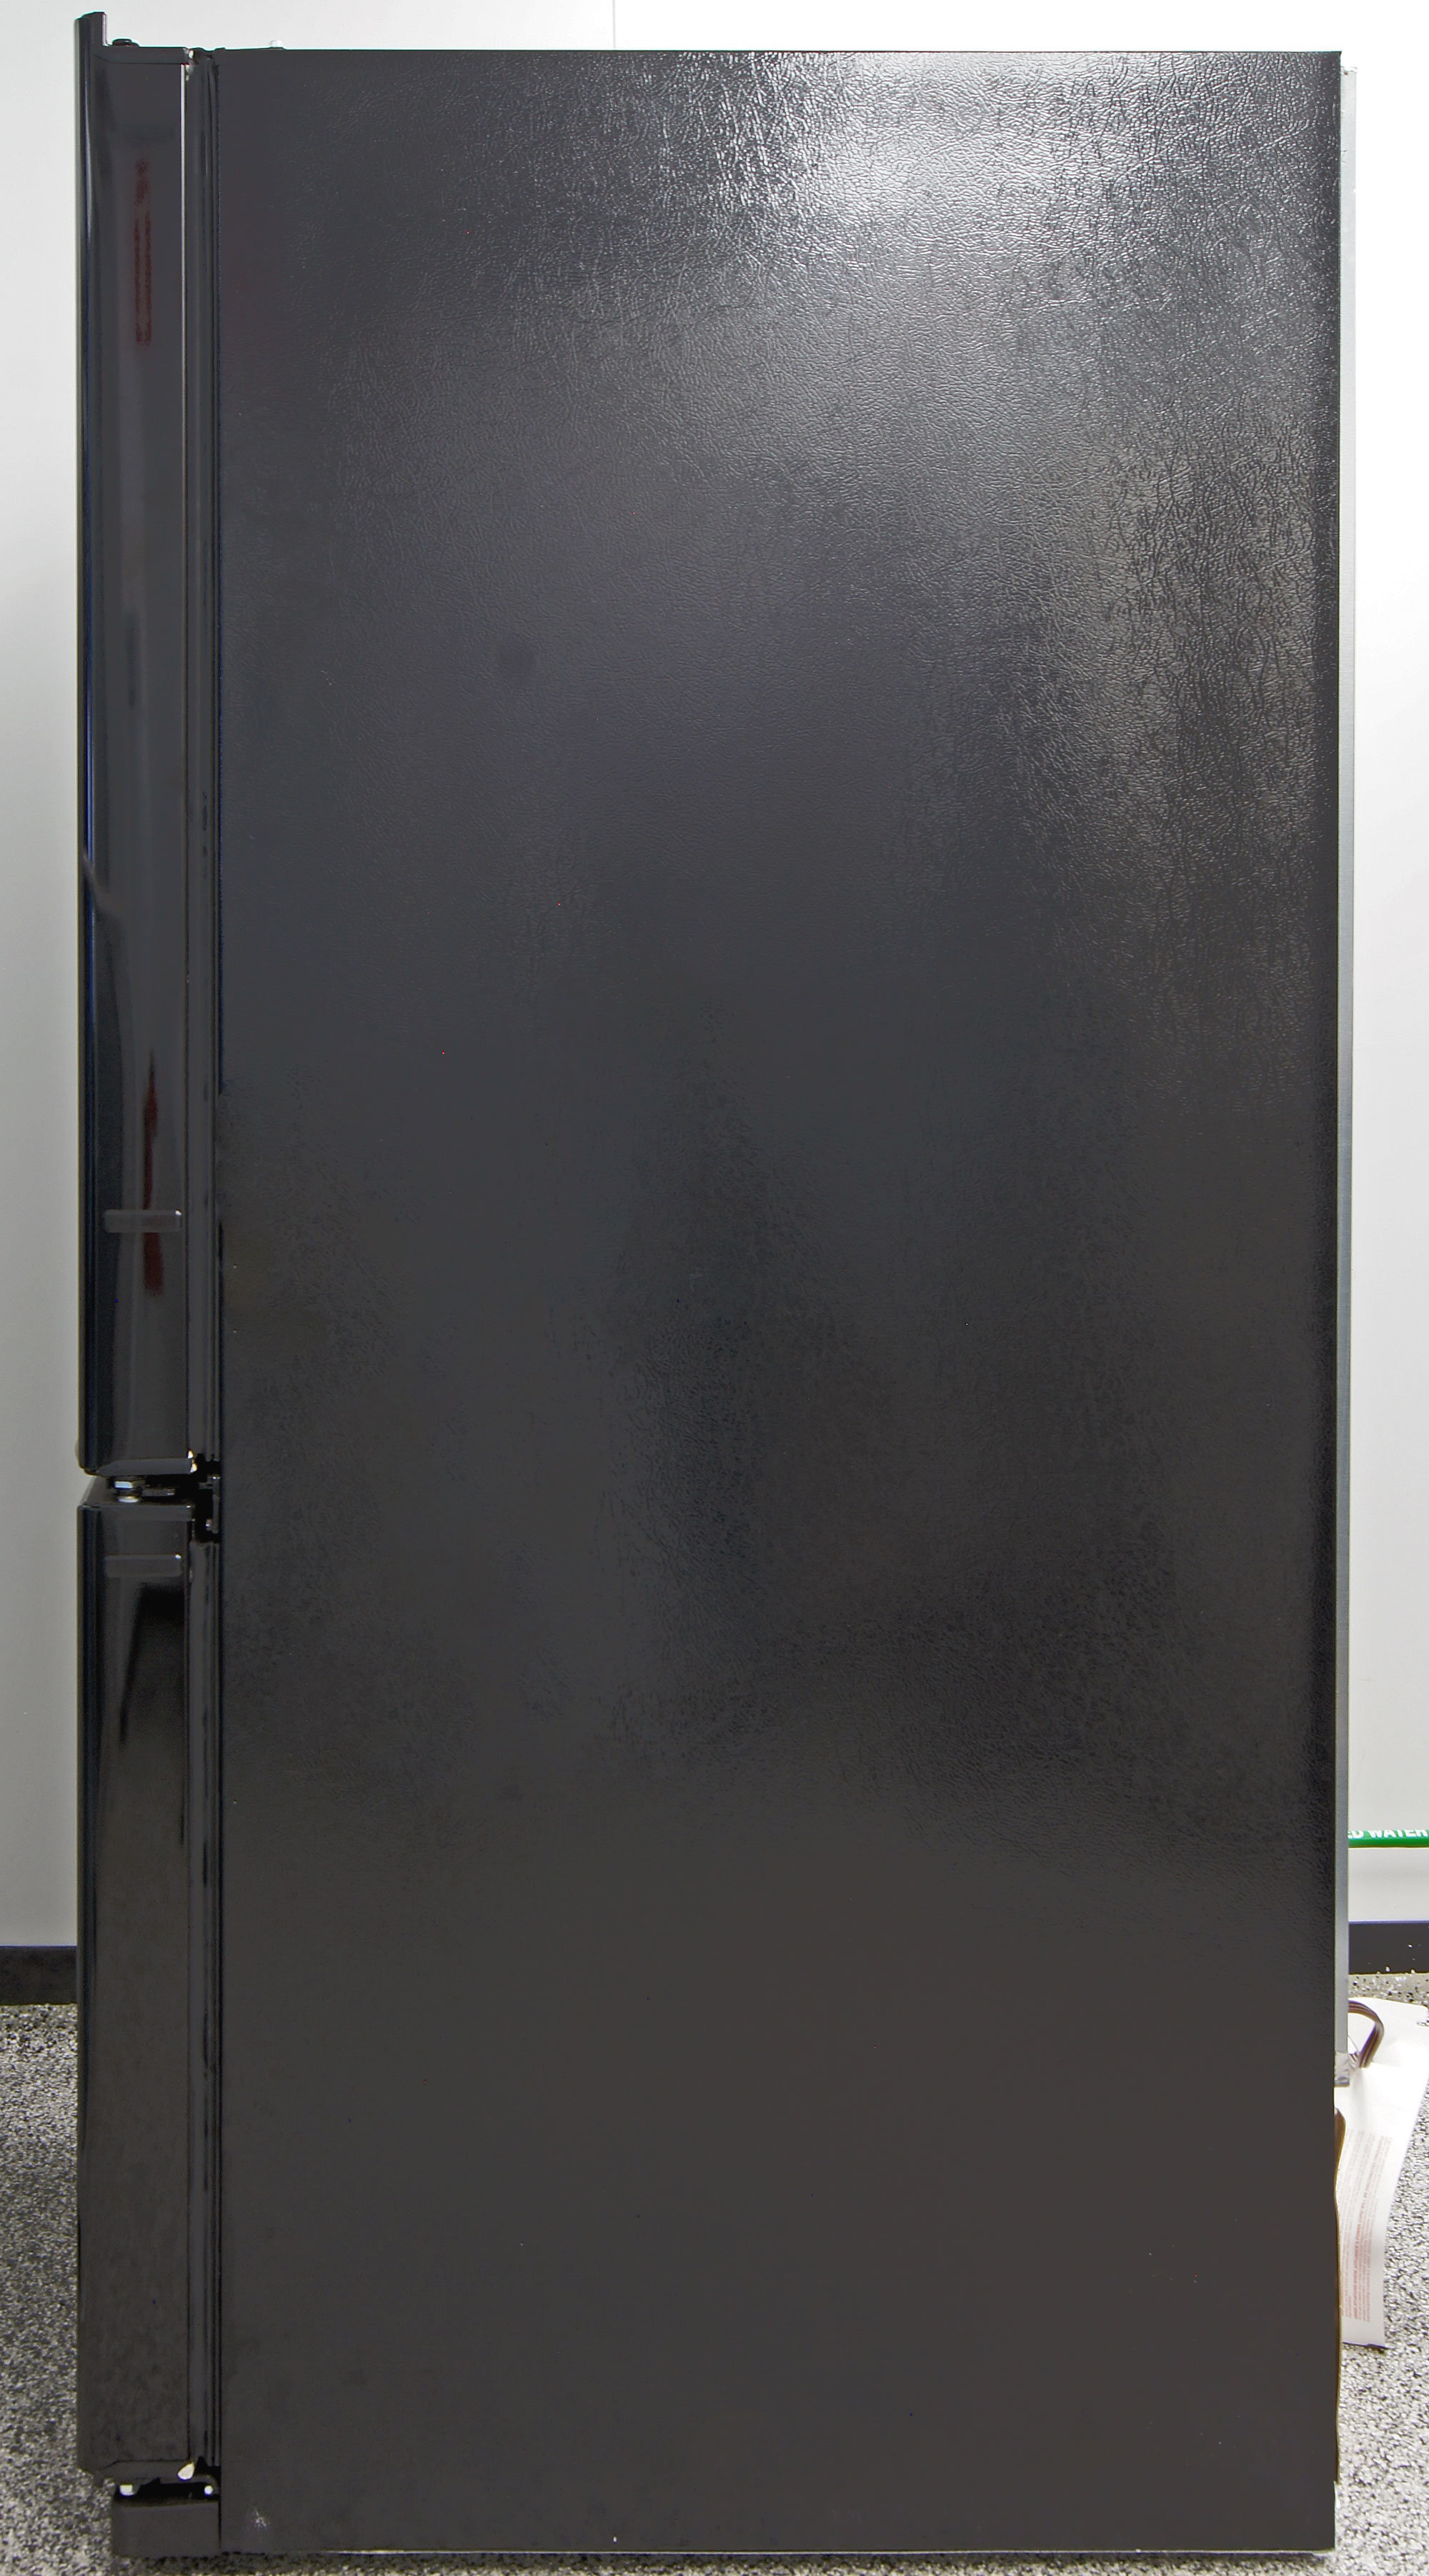 Black matte sides match the high gloss front of the GE Artistry ABE20EGEBS.